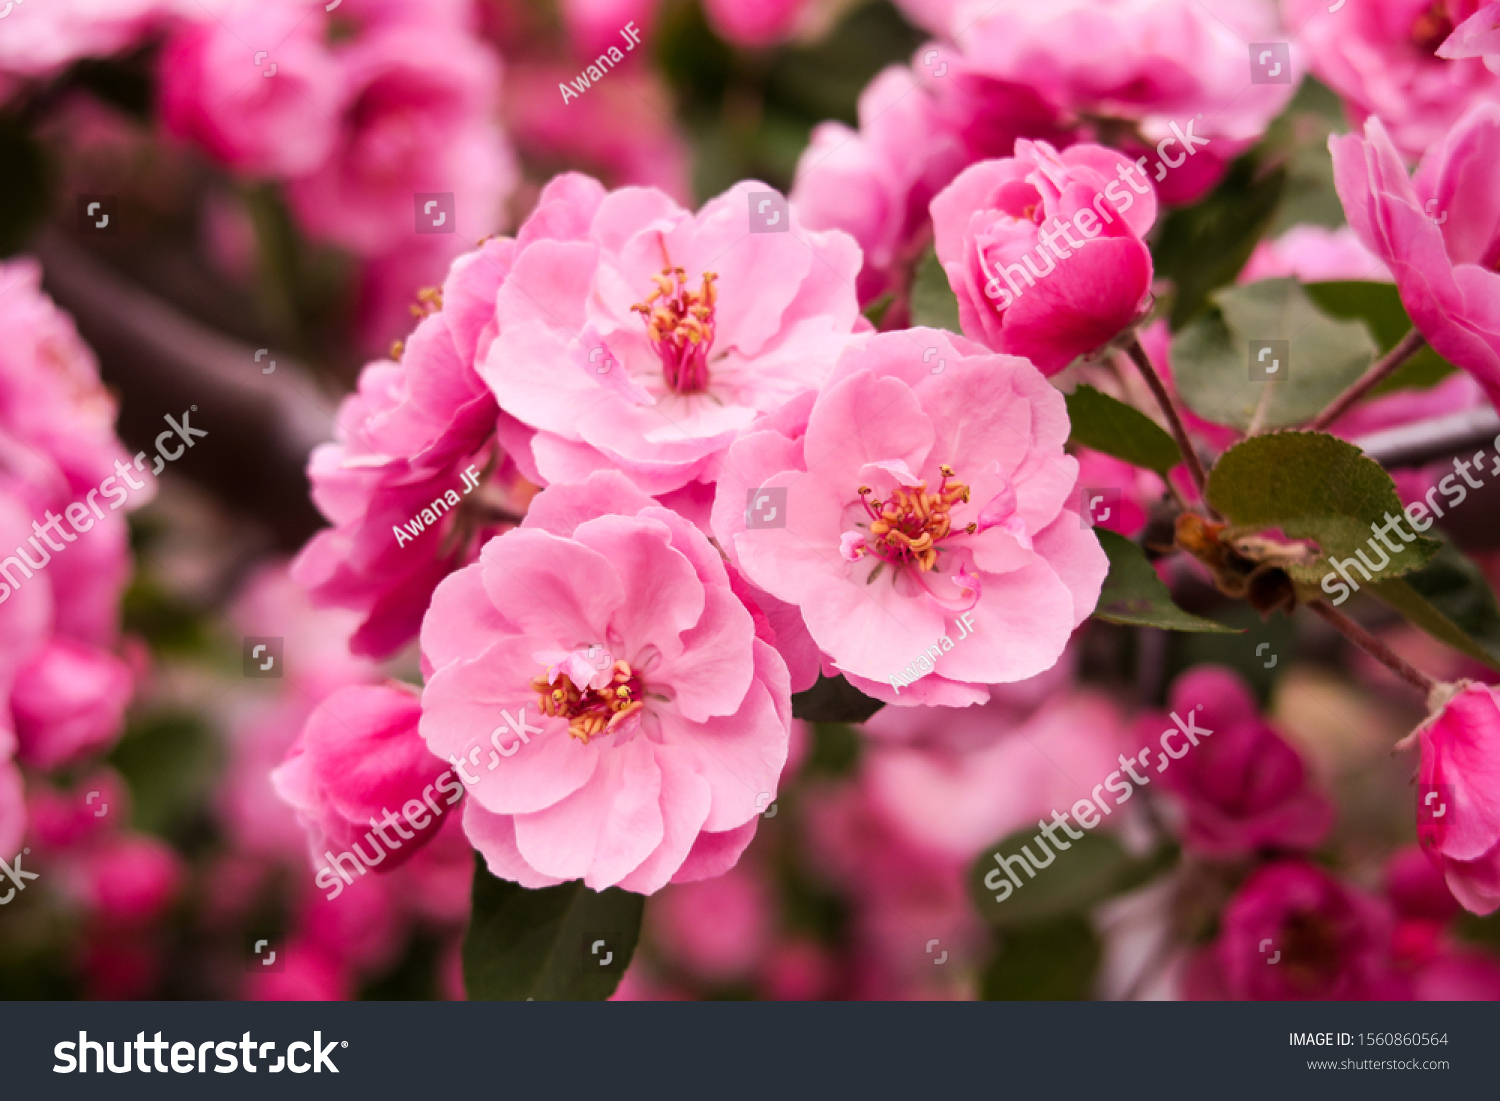 stock-photo-pink-cherry-blossom-flowers-